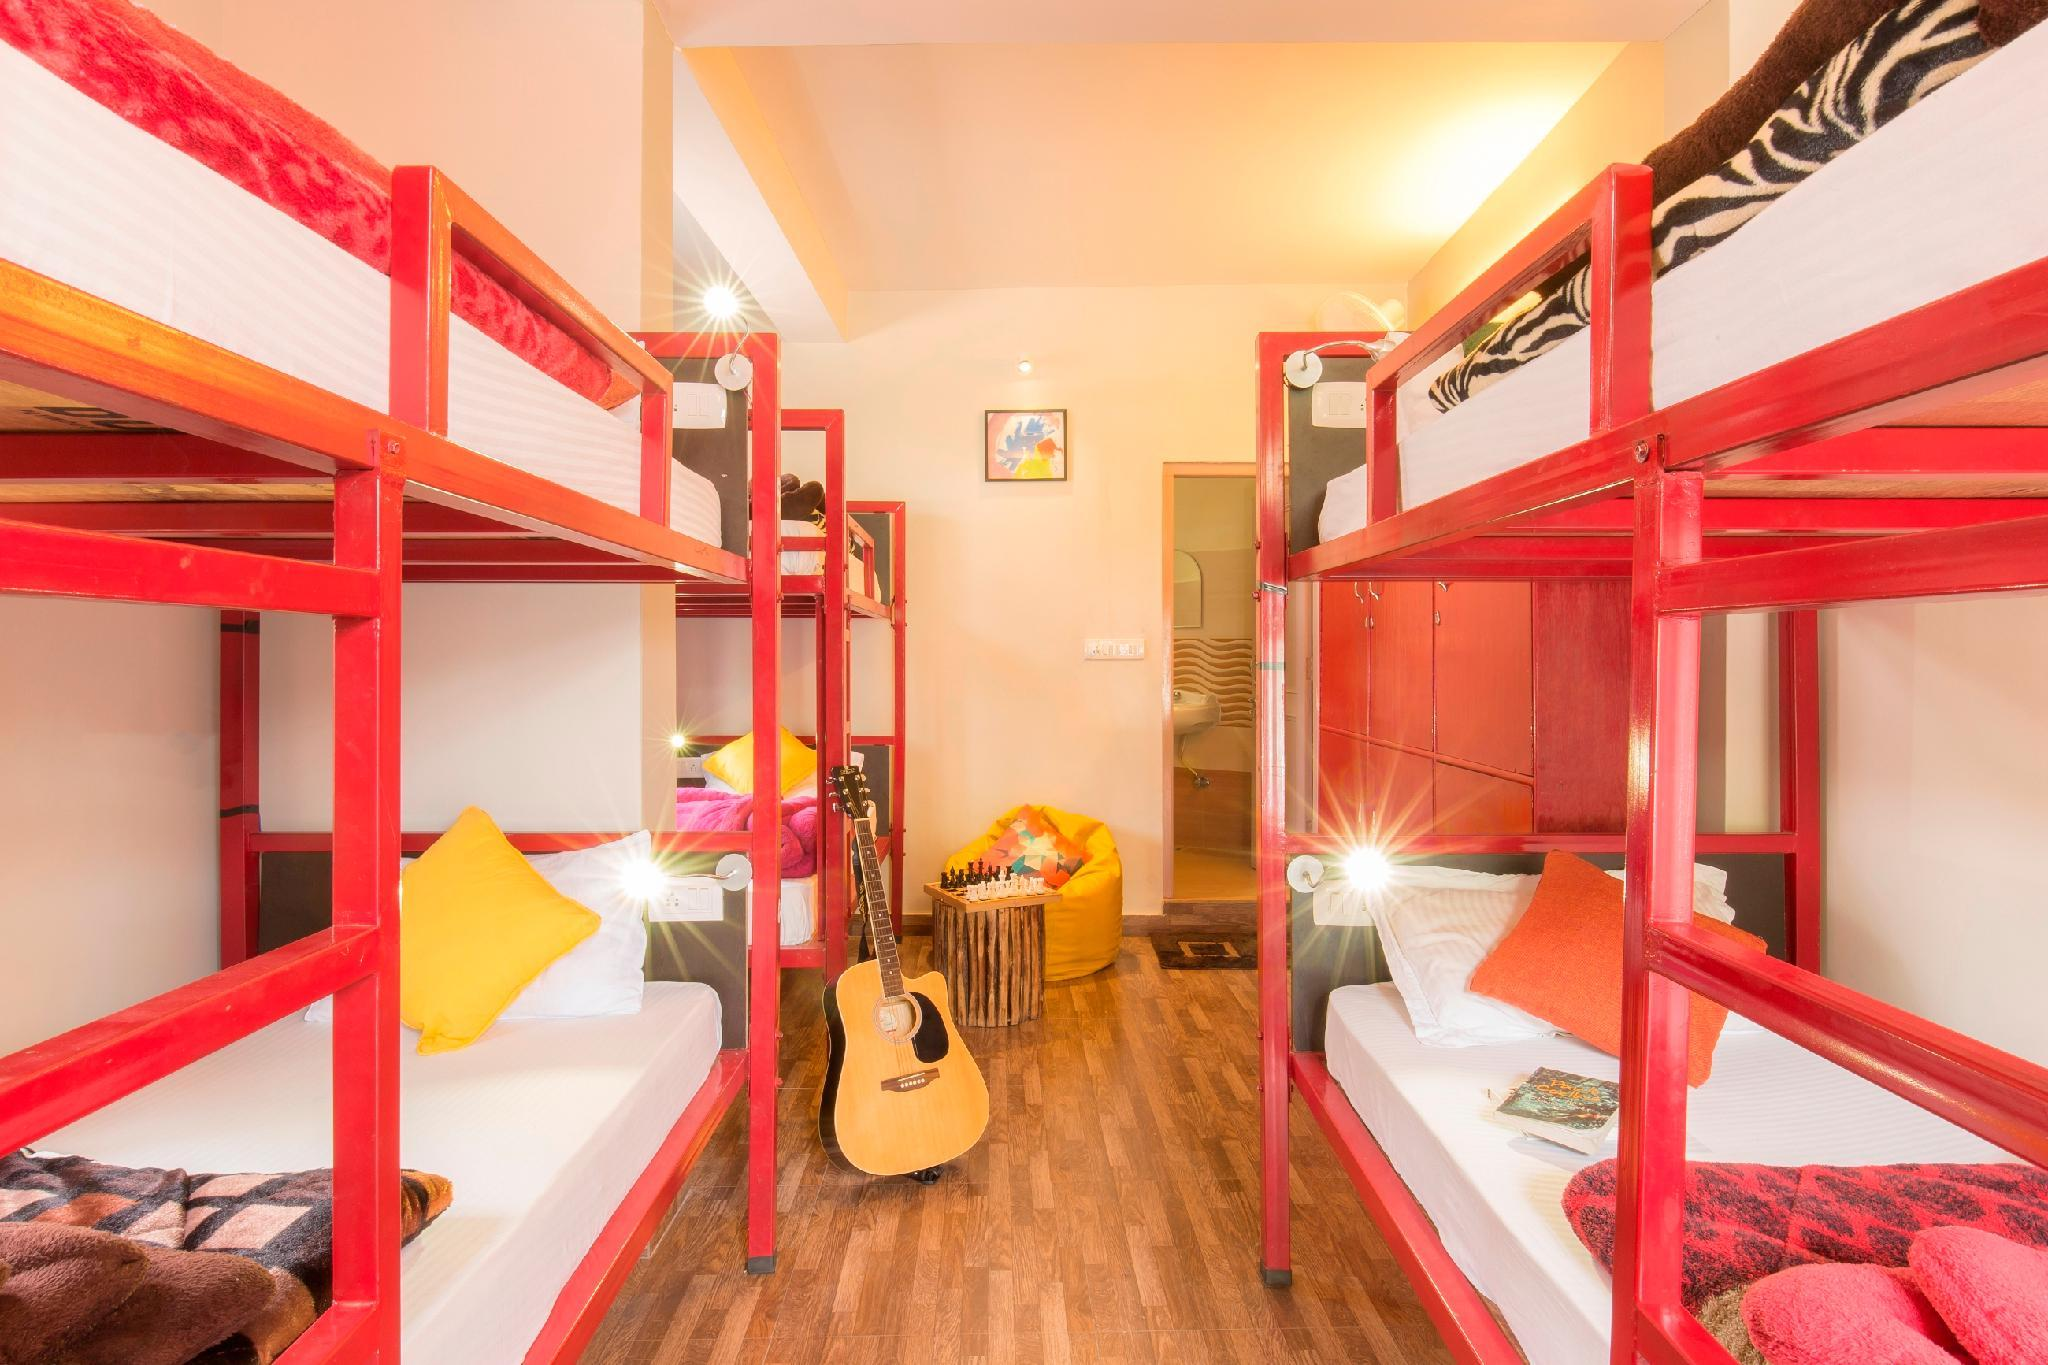 1 person i 6-sengs Sovesal - Blandet (1 Person in 6-Bed Dormitory - Mixed)